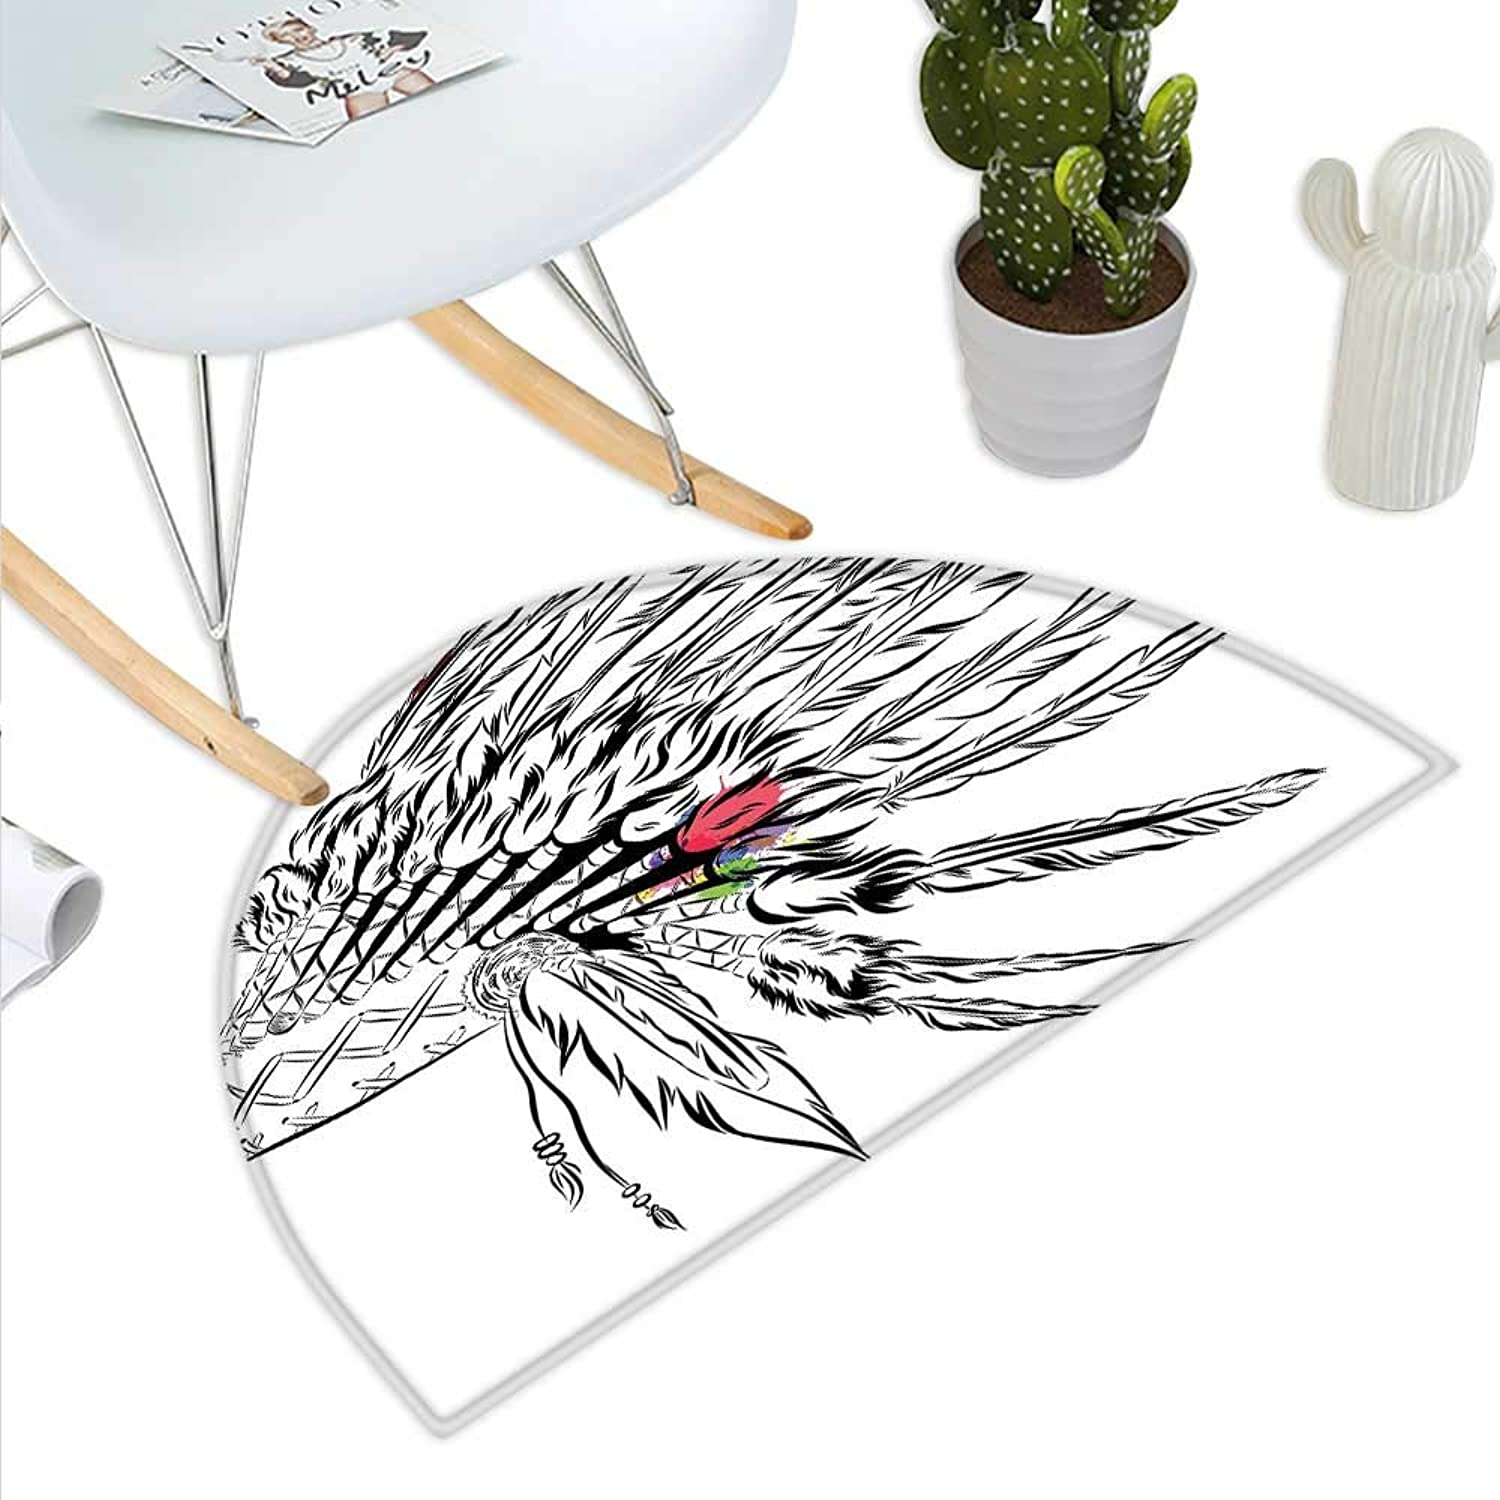 Feather Semicircle Doormat Native American Headdress in Sketch Style with color Splashes Primitive Halfmoon doormats H 35.4  xD 53.1  Black White Multicolor